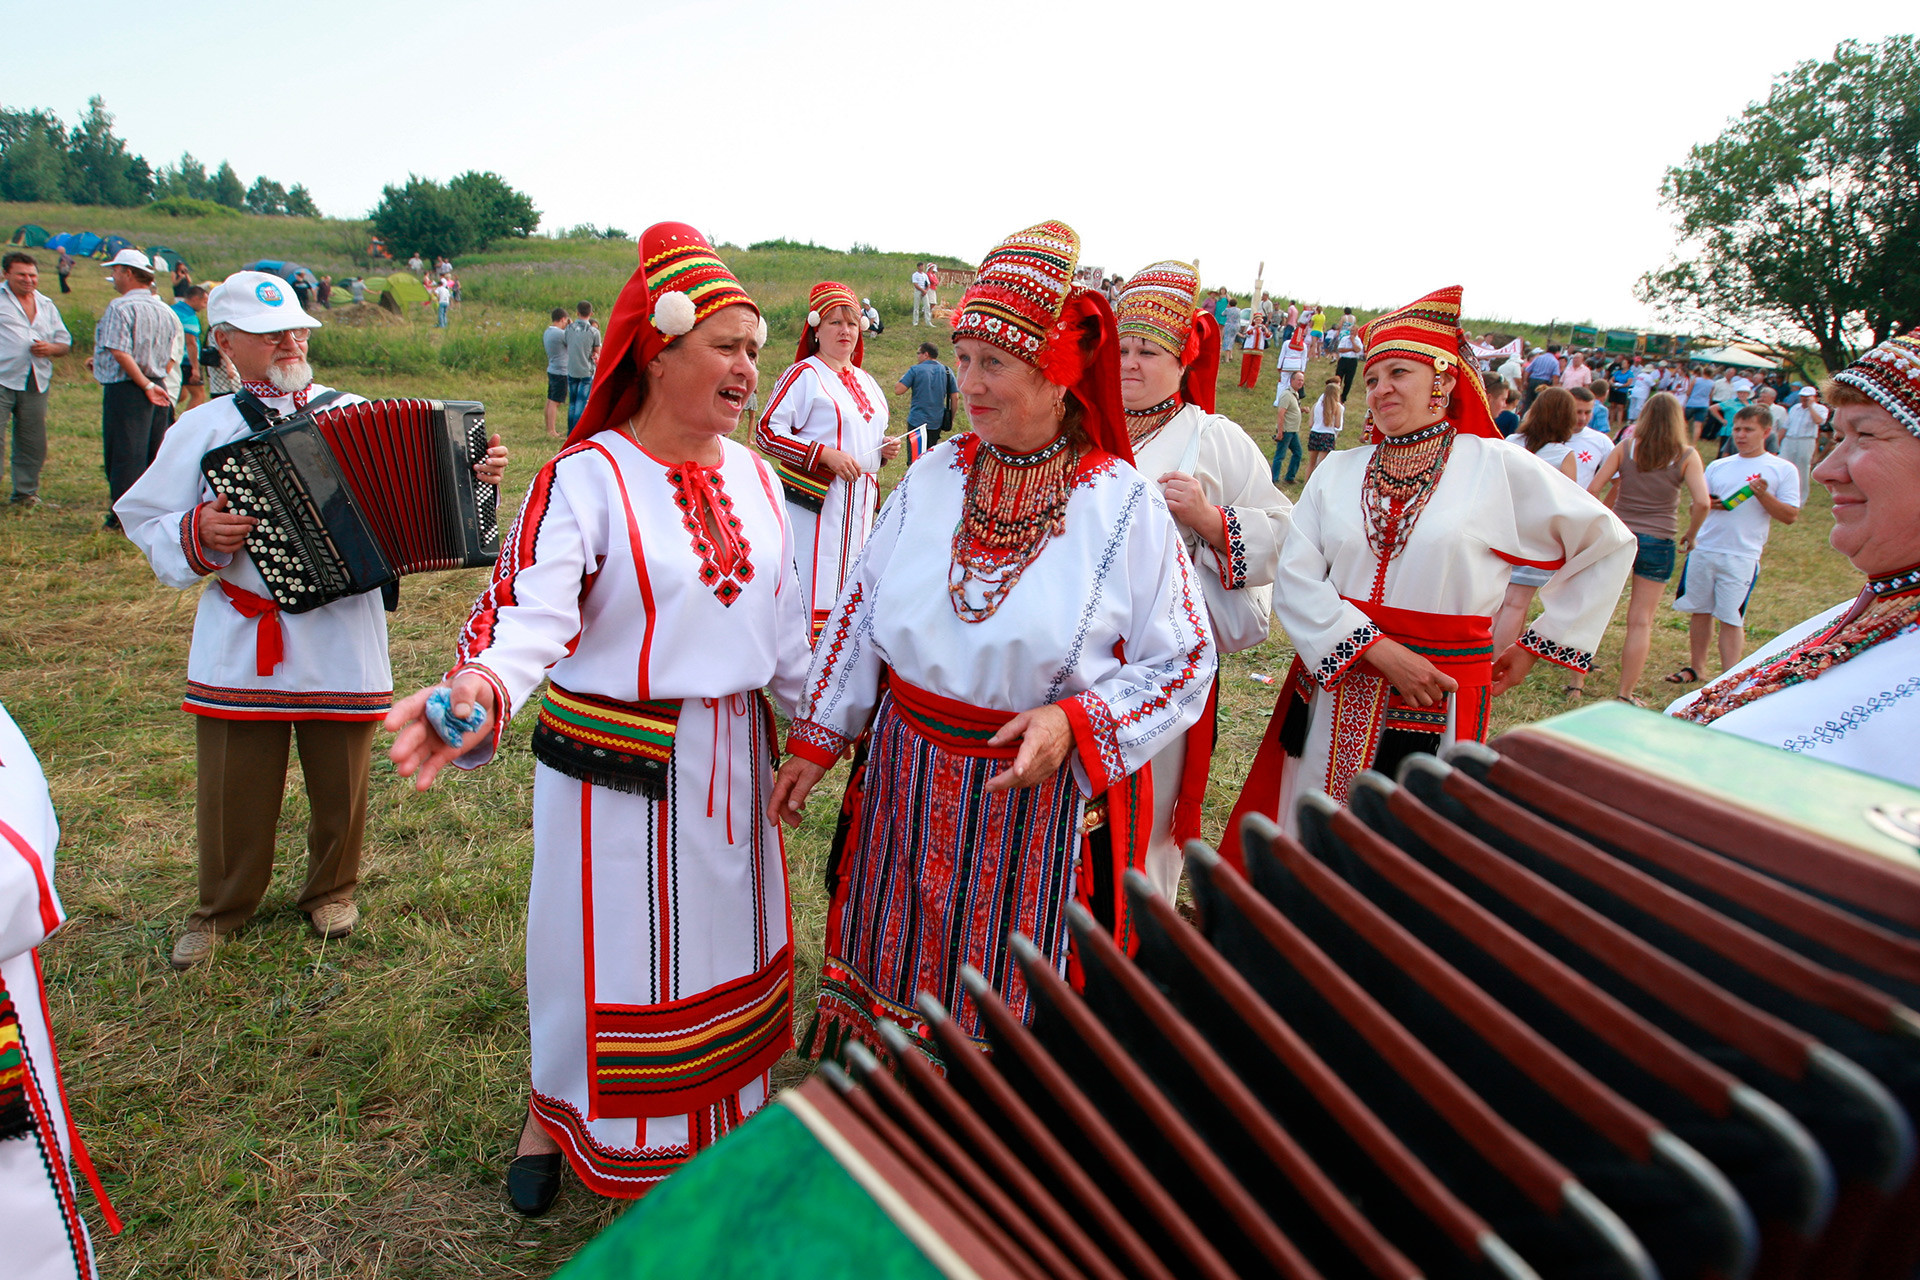 Chukaly village residents at the ethnic folklore festival in the Republic of Mordovia